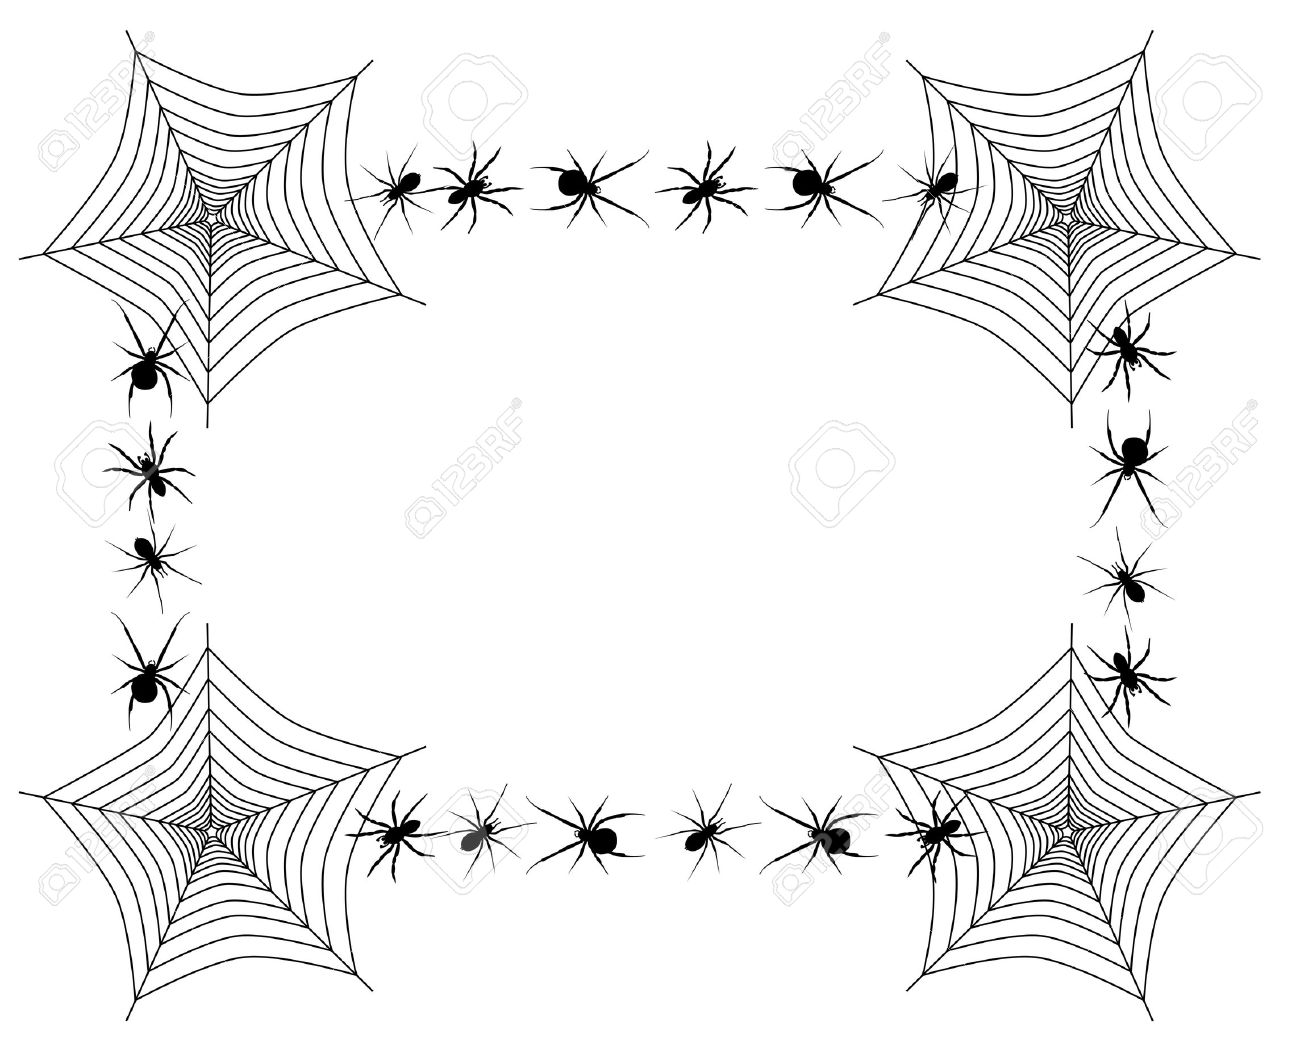 Web Spider Vector Vector Border With Spider Webs